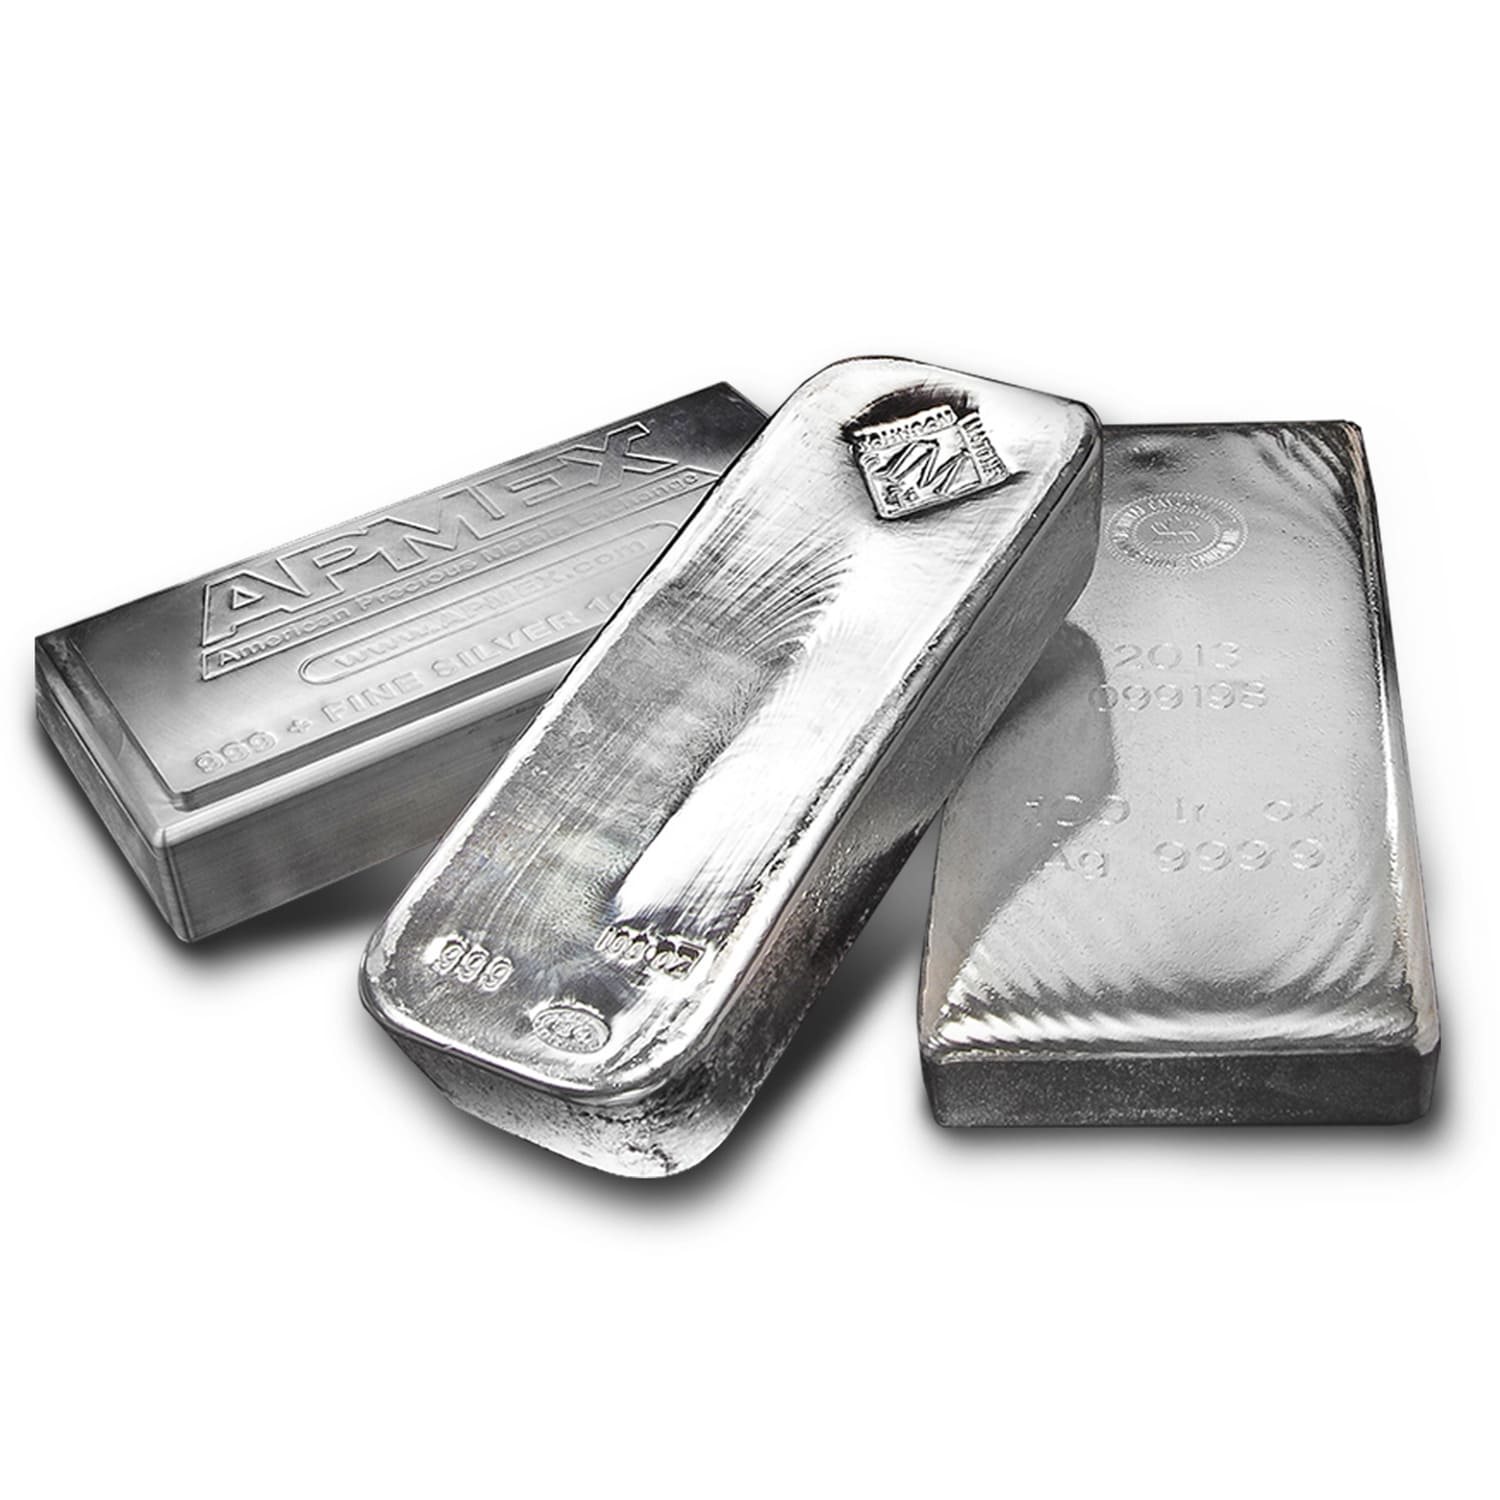 97.93 oz Silver Bars - Secondary Market